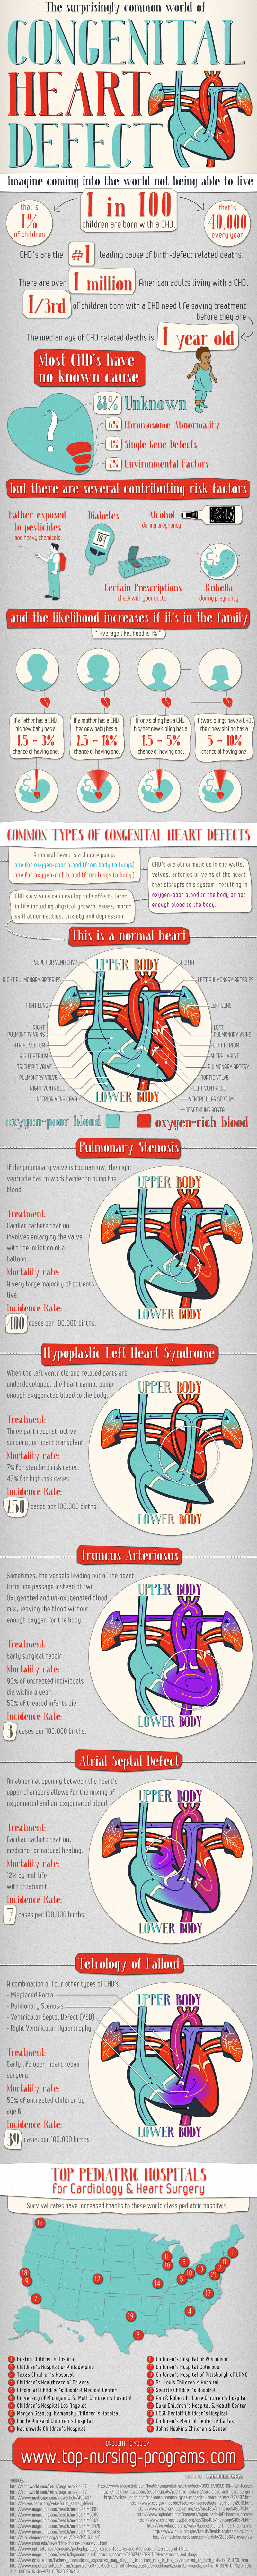 congenital-heart-defect